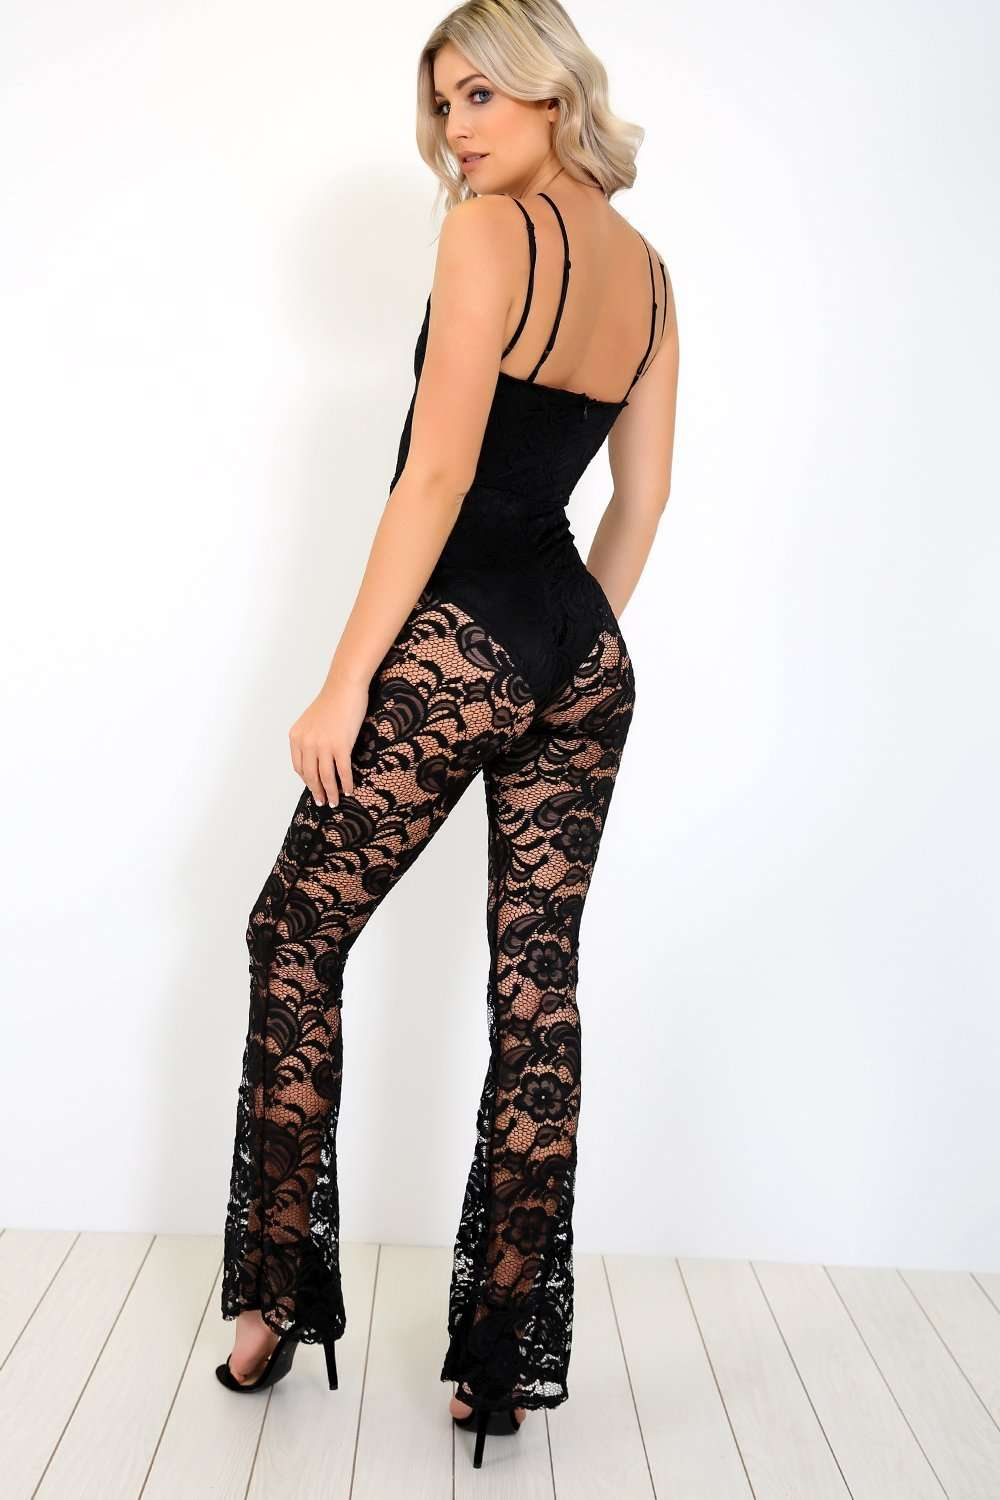 Cassie Strappy Harness Black Lace Jumpsuit - bejealous-com